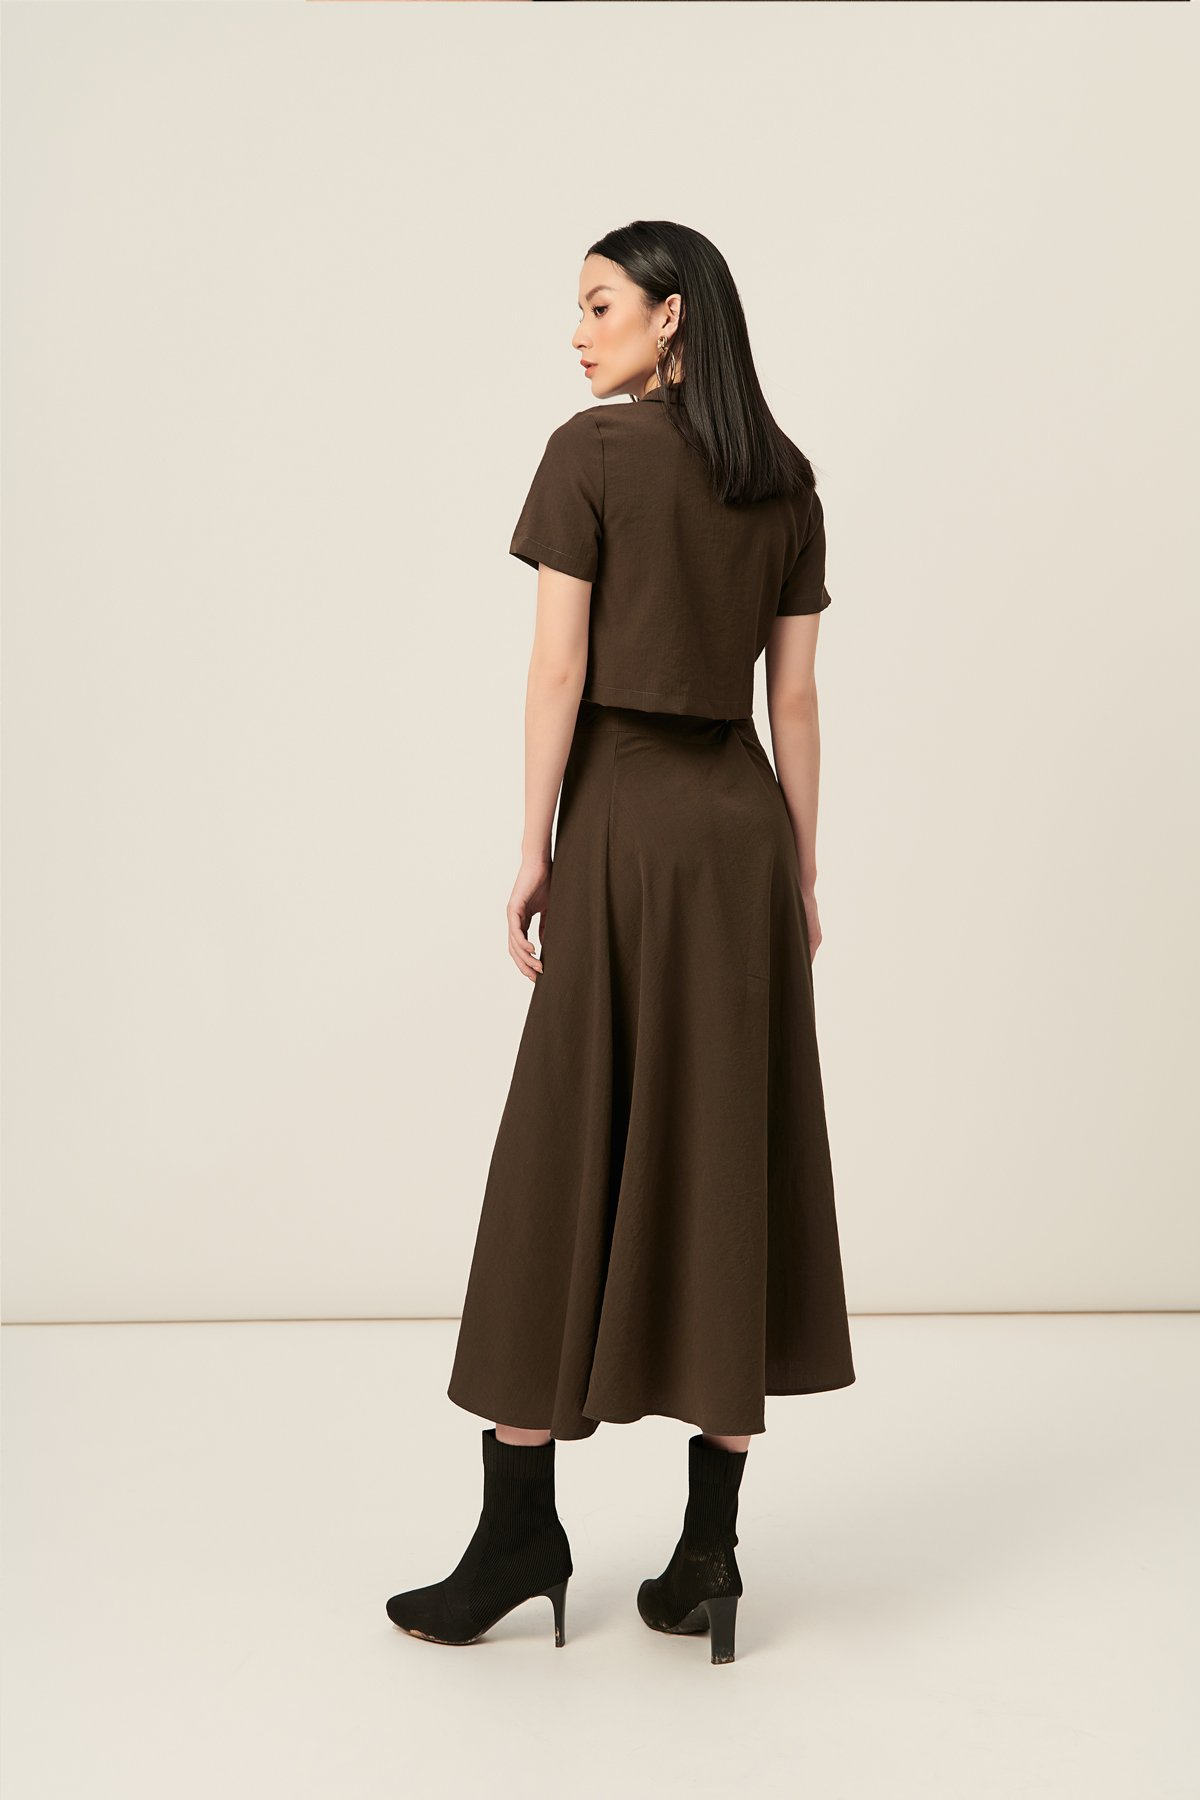 Bộ linen army cổ danton - Fern army two-piece outfit